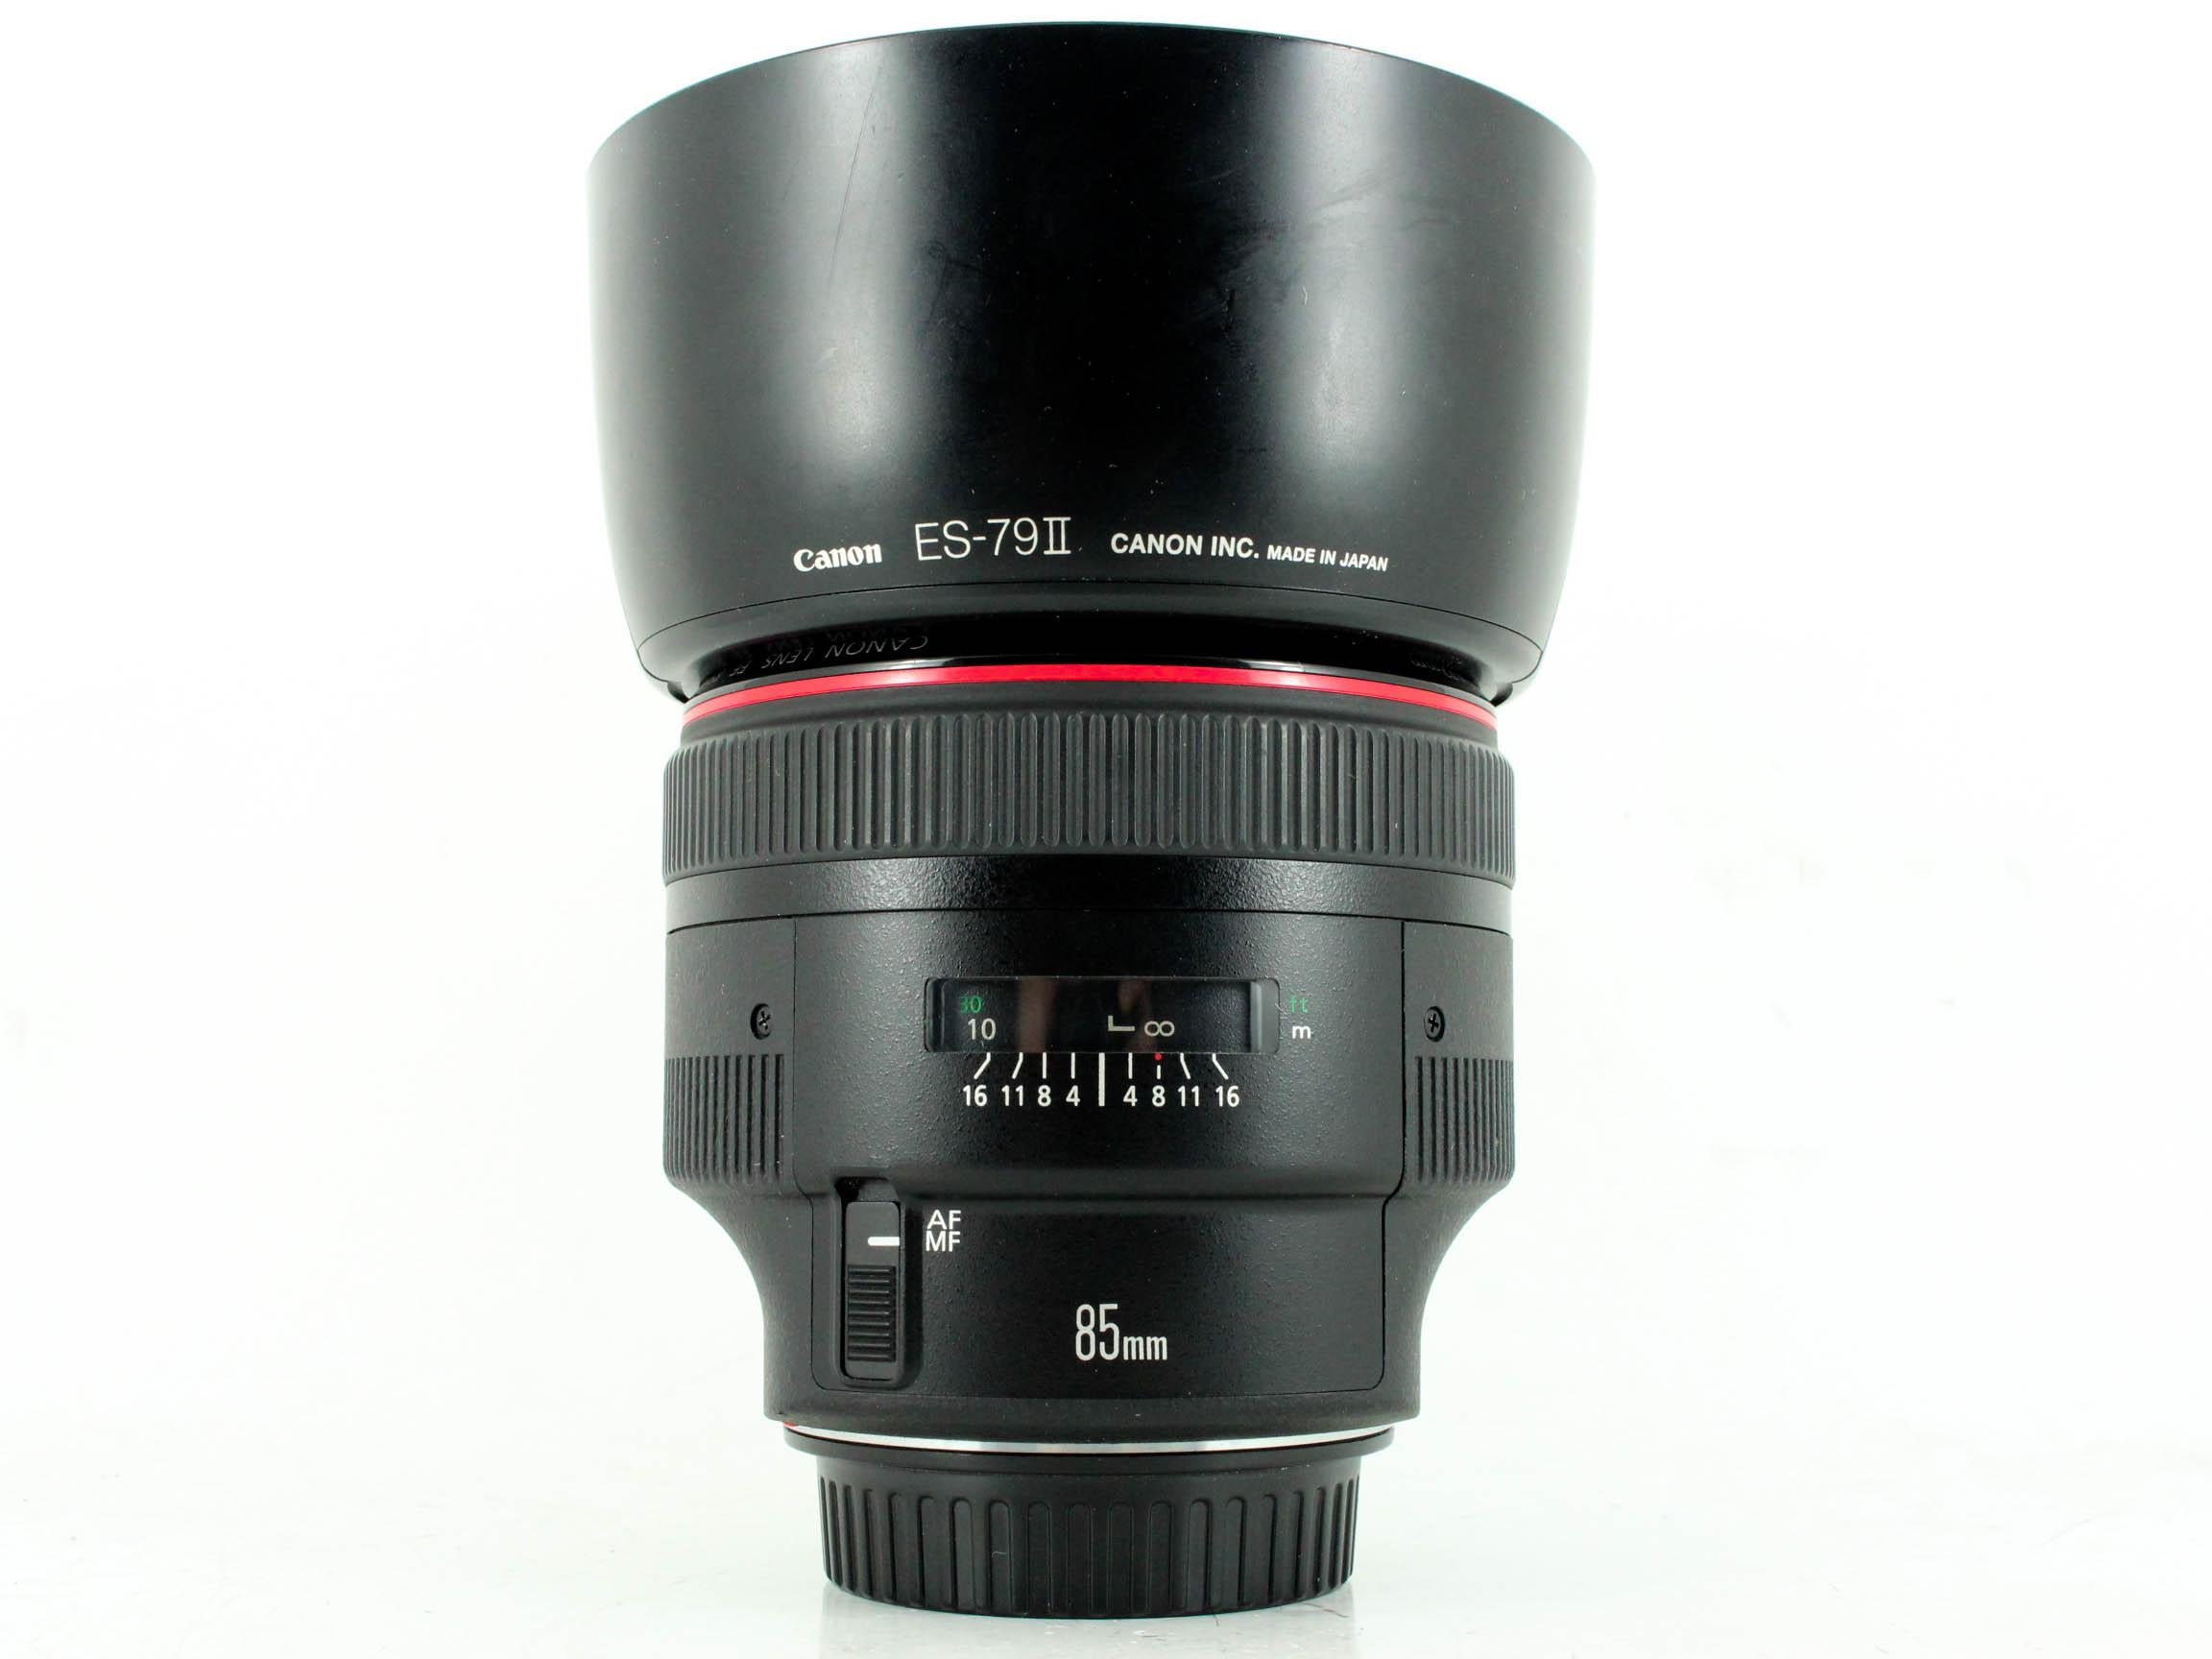 canon85mmf1.2 image